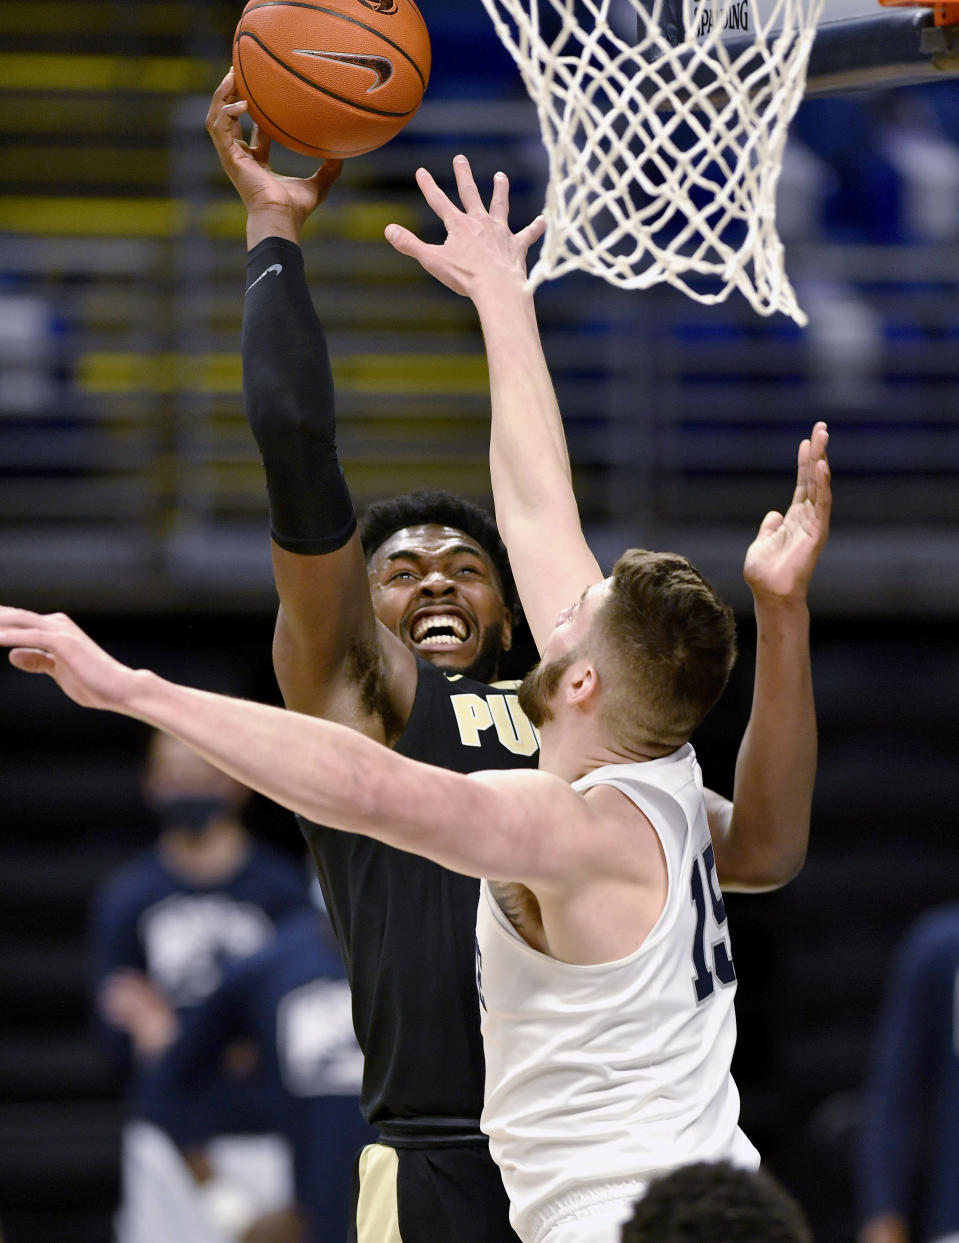 Purdue's Trevion Williams shoots over Penn State's Trent Buttrick during an NCAA college basketball game Friday, Feb. 26, 2021, in State College, Pa. (Abby Drey/Centre Daily Times via AP)